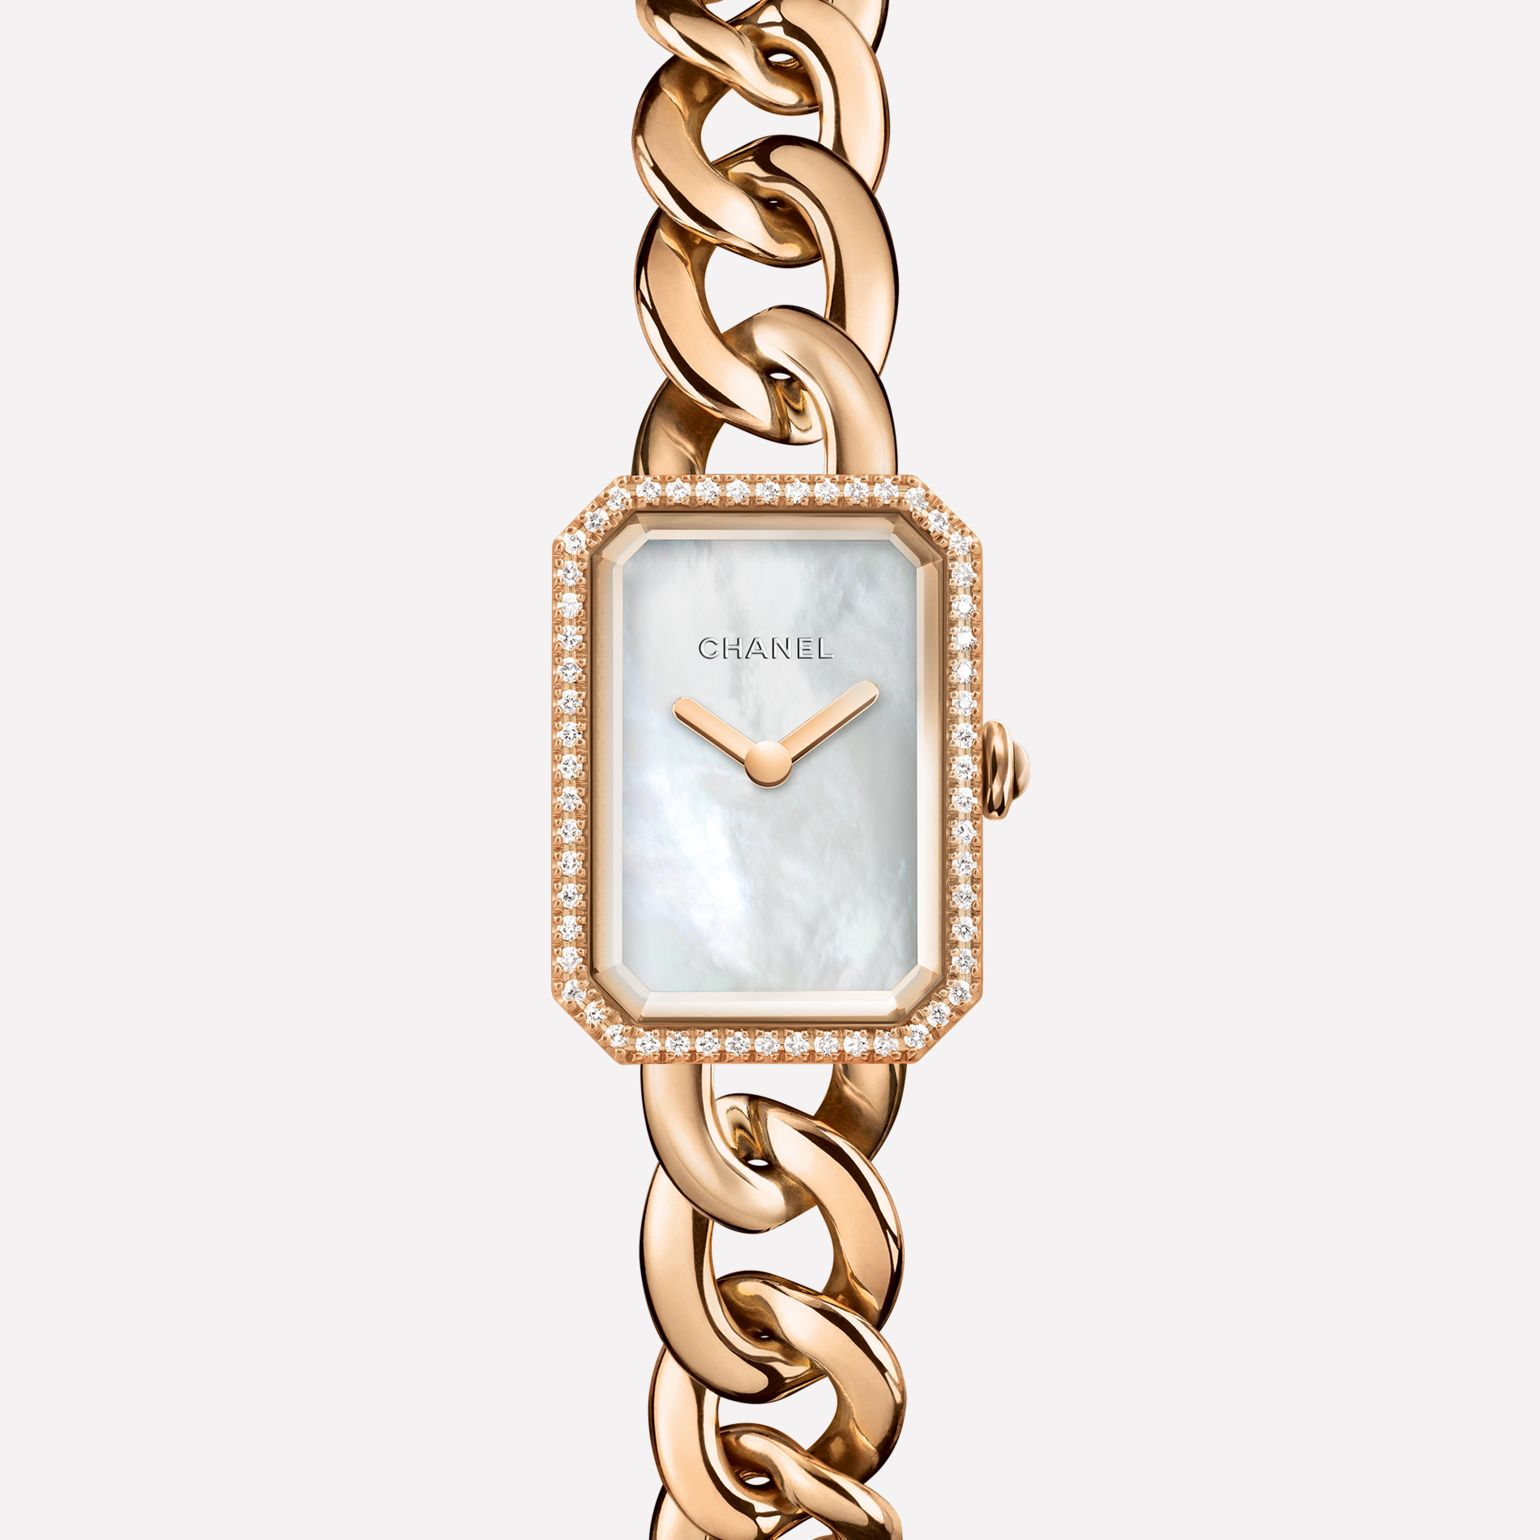 Première Chaîne Small version, BEIGE GOLD and diamonds, white mother-of-pearl dial